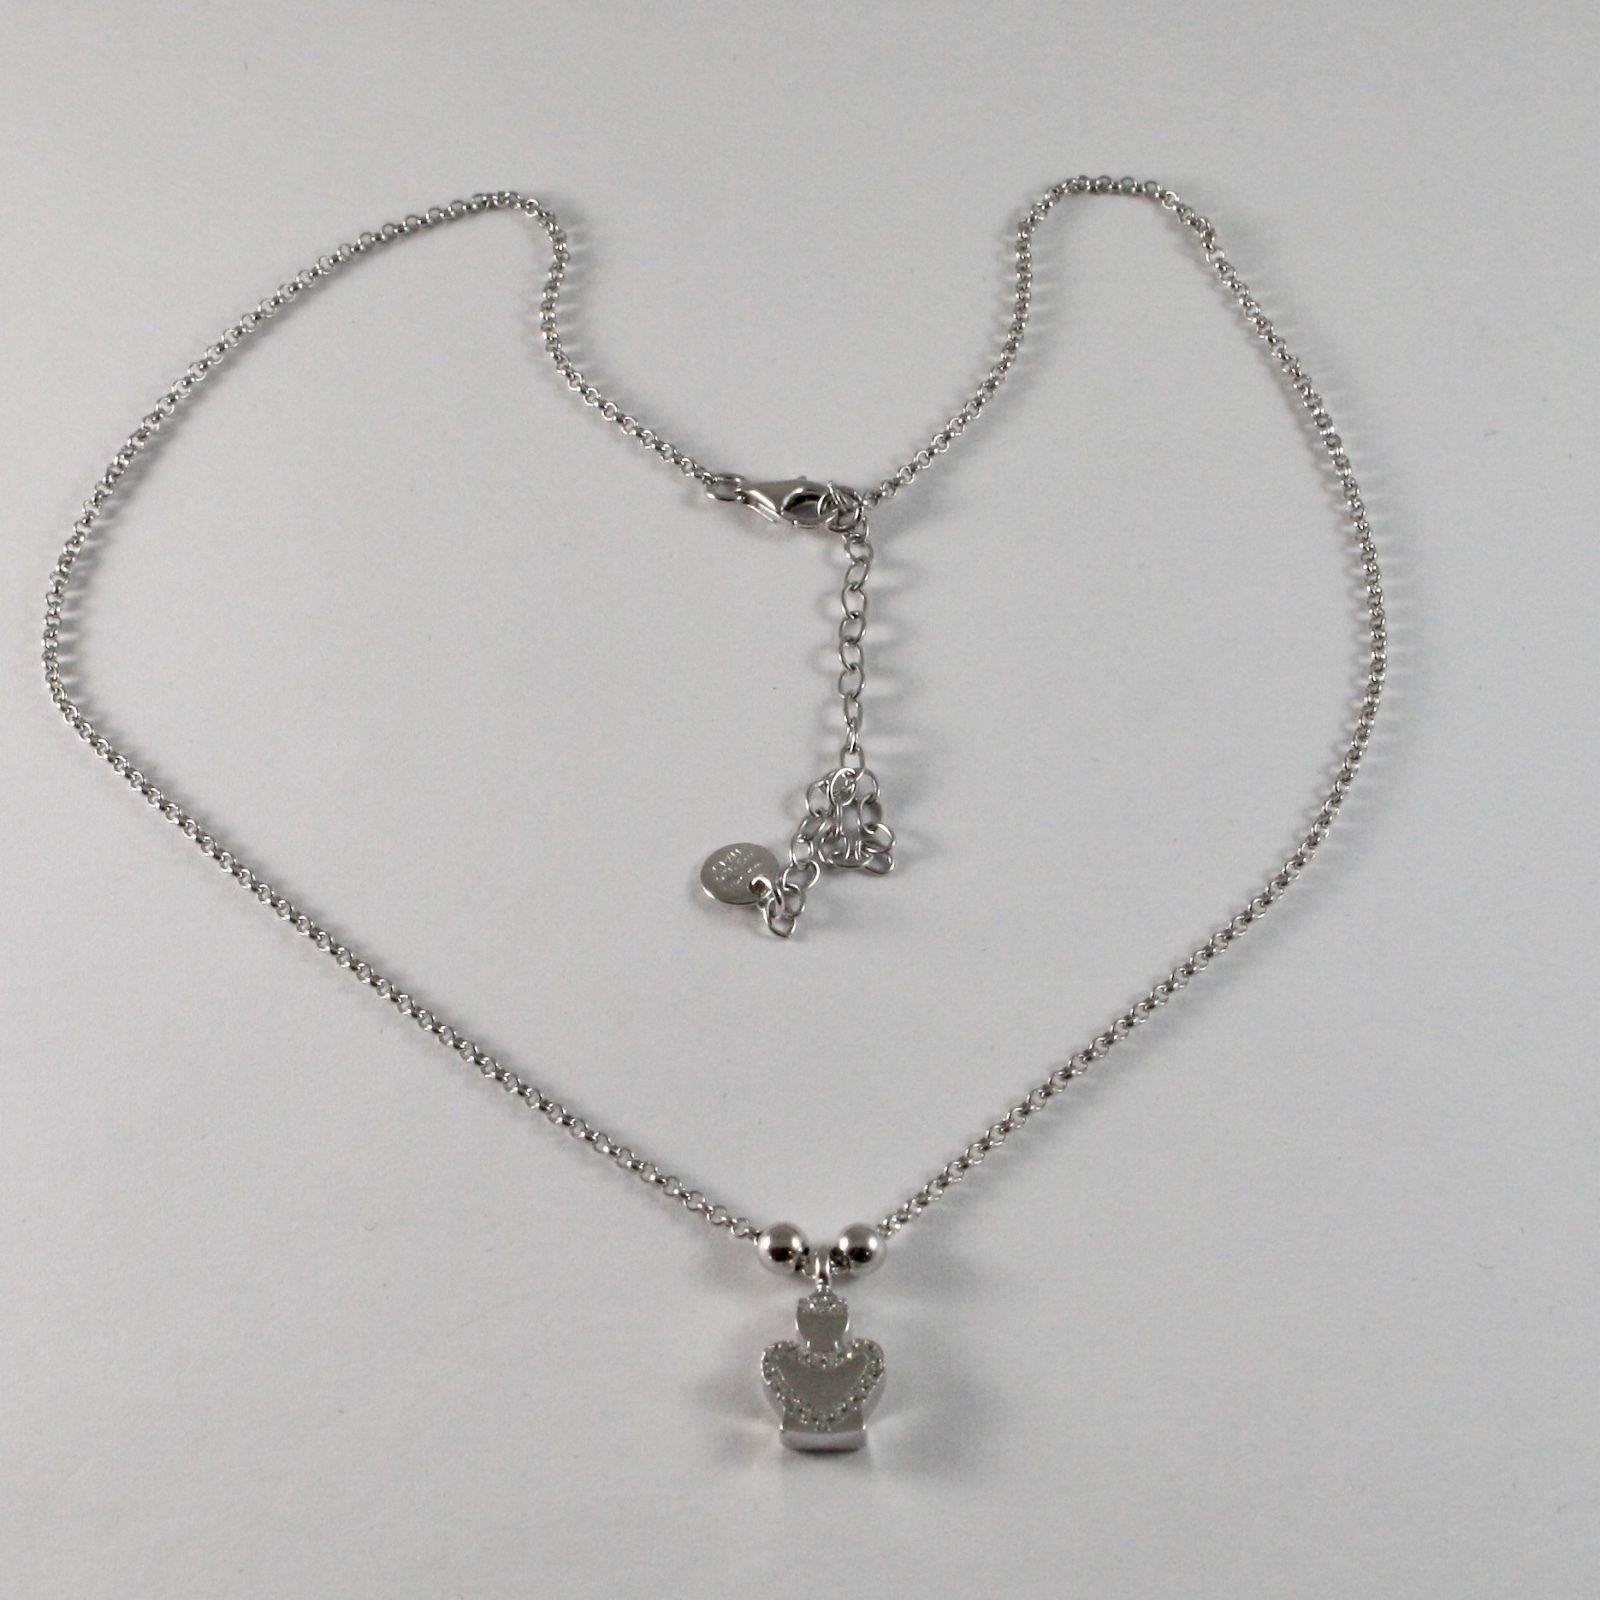 COLLANA IN ARGENTO 925 JACK&CO CON ANGELO CON ZIRCONIA CUBICA BIANCHI JCN0610